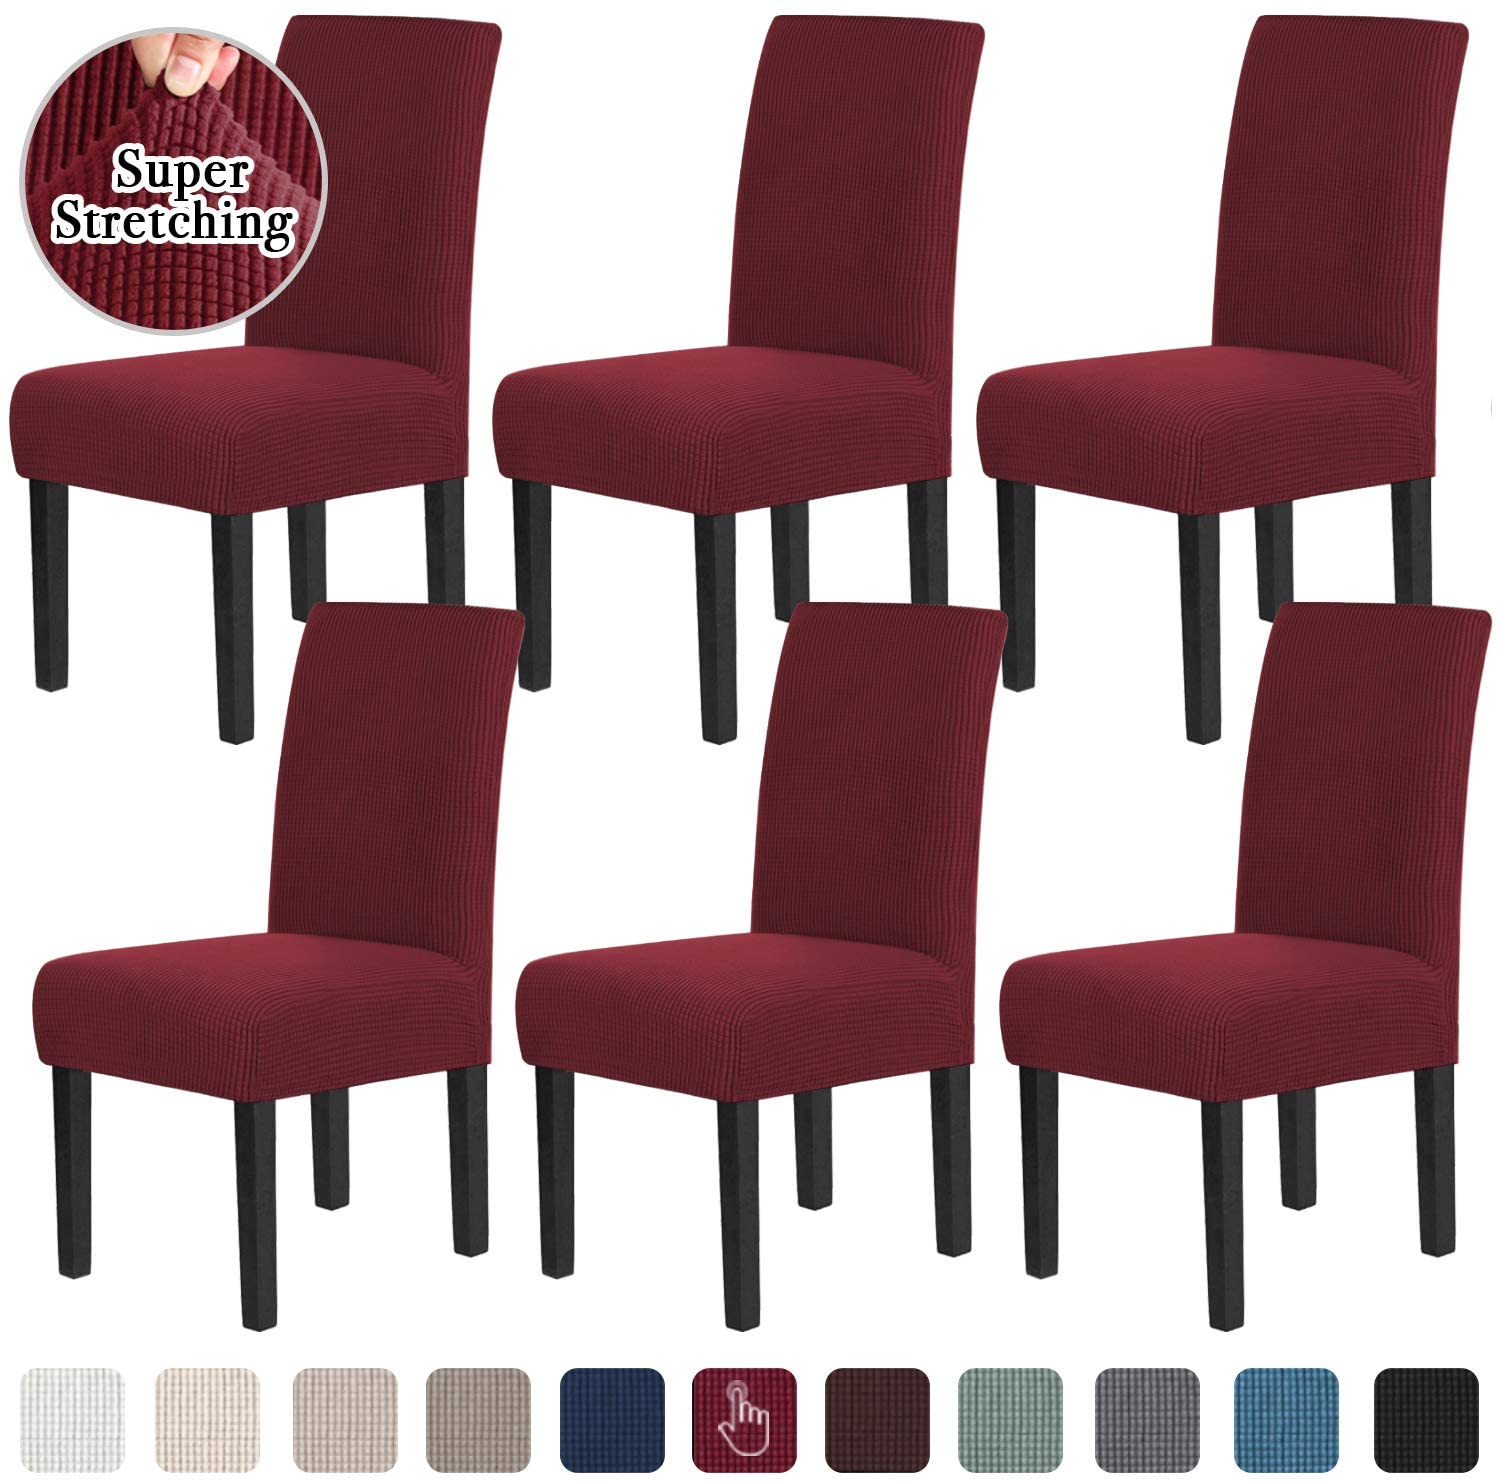 Chair Covers for Dining Room Stretch Dining Chair Covers Chair Cushions for Dining Chairs Super Fit Dining Chair Protector Removable Washable Chair Covers Set of 6, Wine